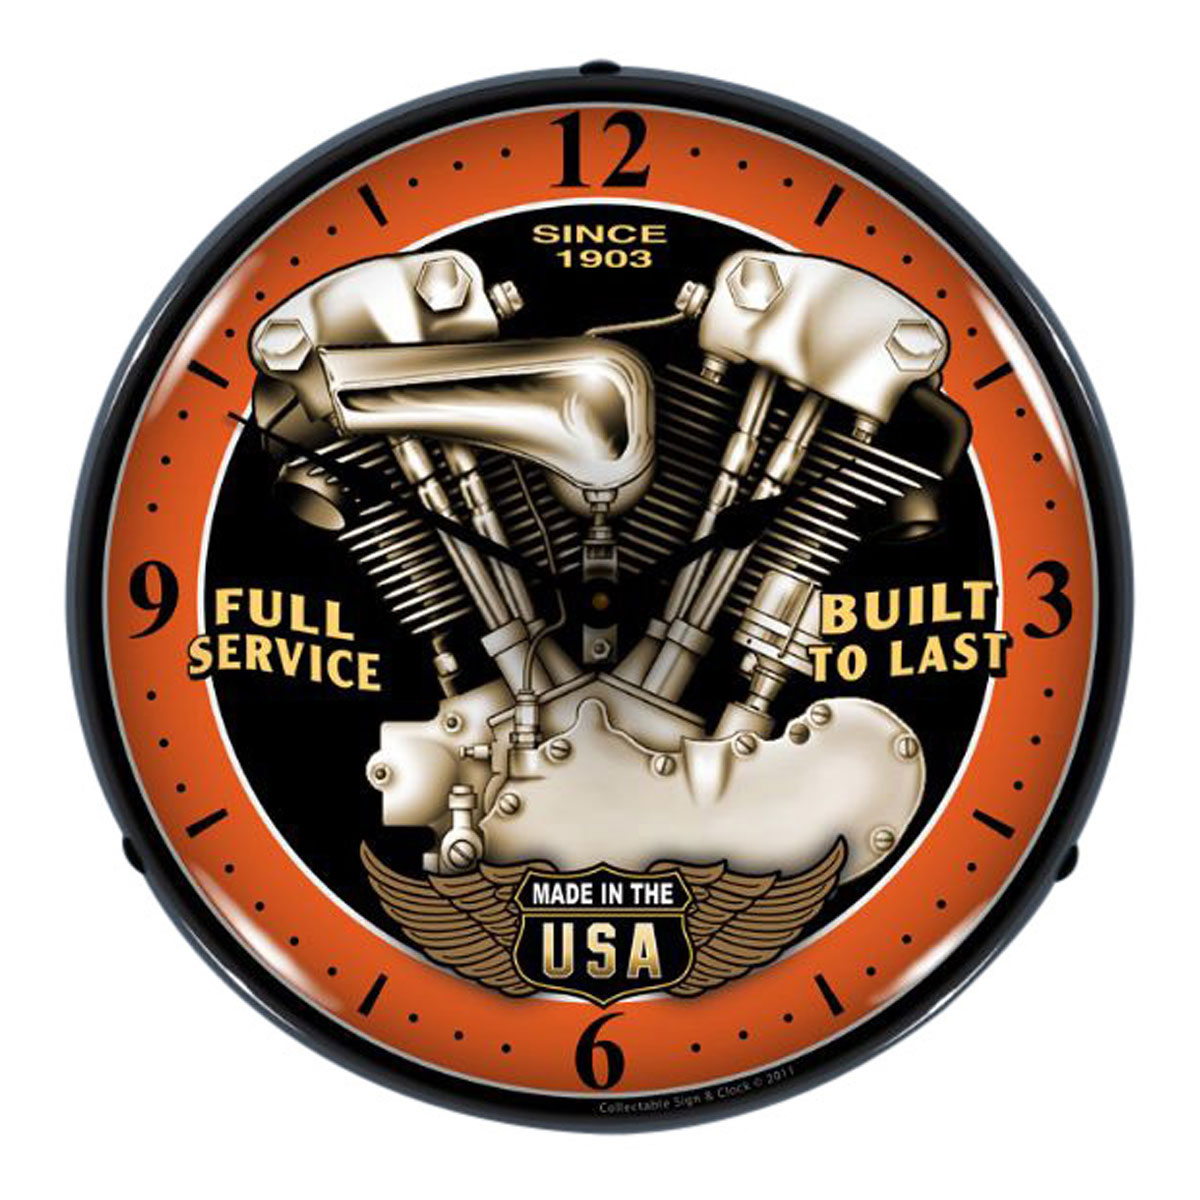 V twin usa motorcycle engine light up clock vintage garage v twin usa motorcycle engine light up clock vintage garage clocks retroplanet amipublicfo Images